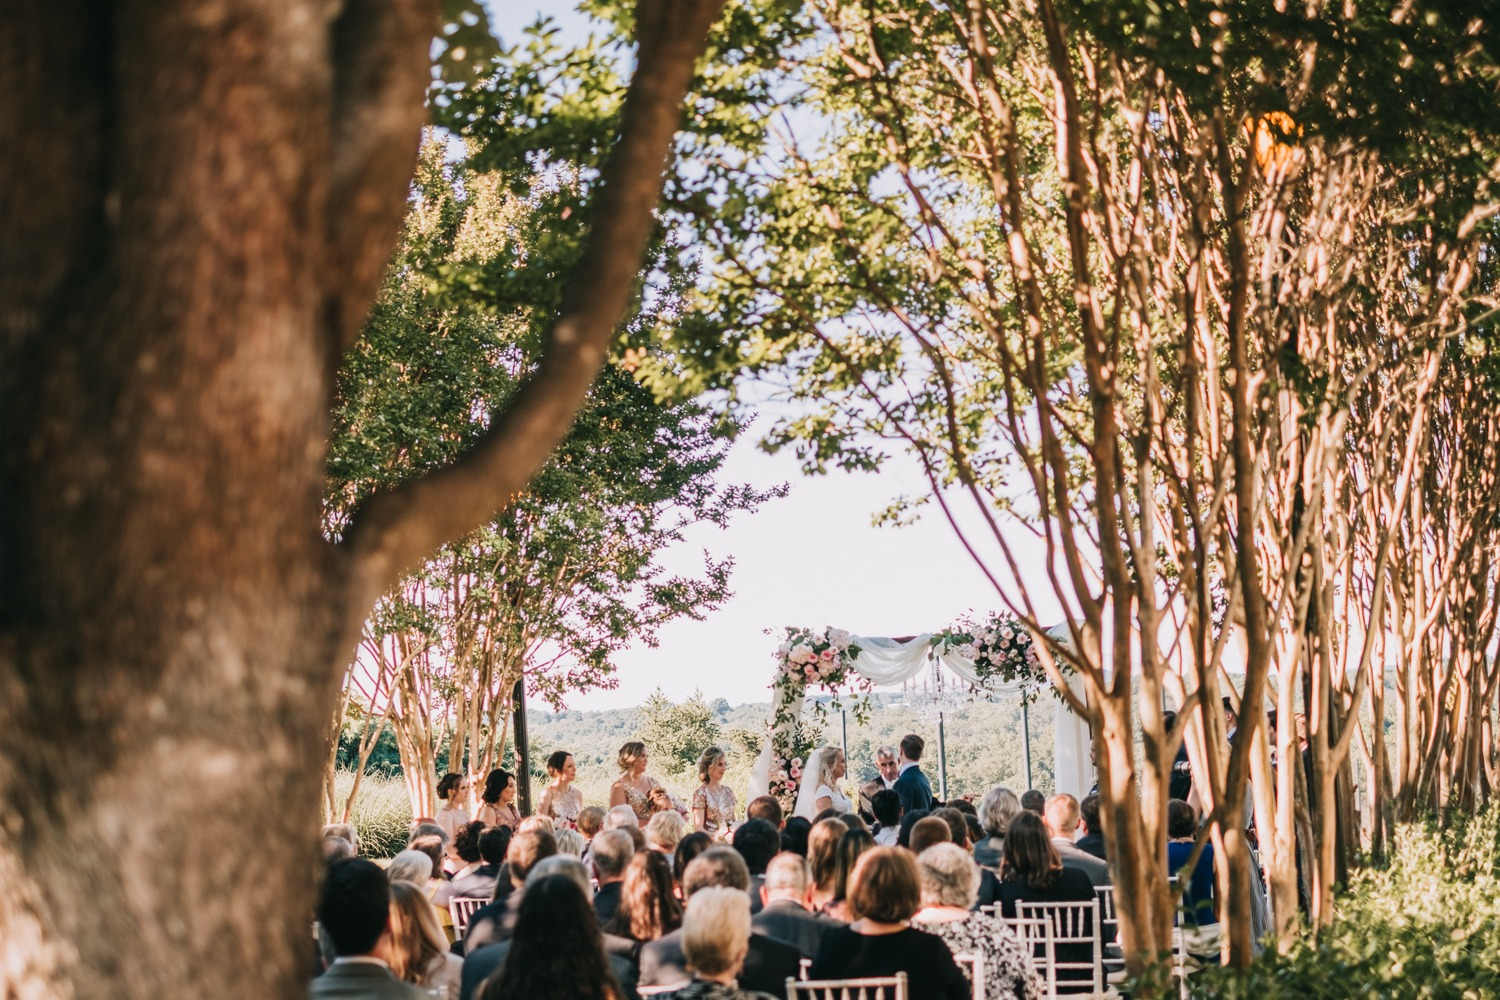 wedding ceremony among the trees